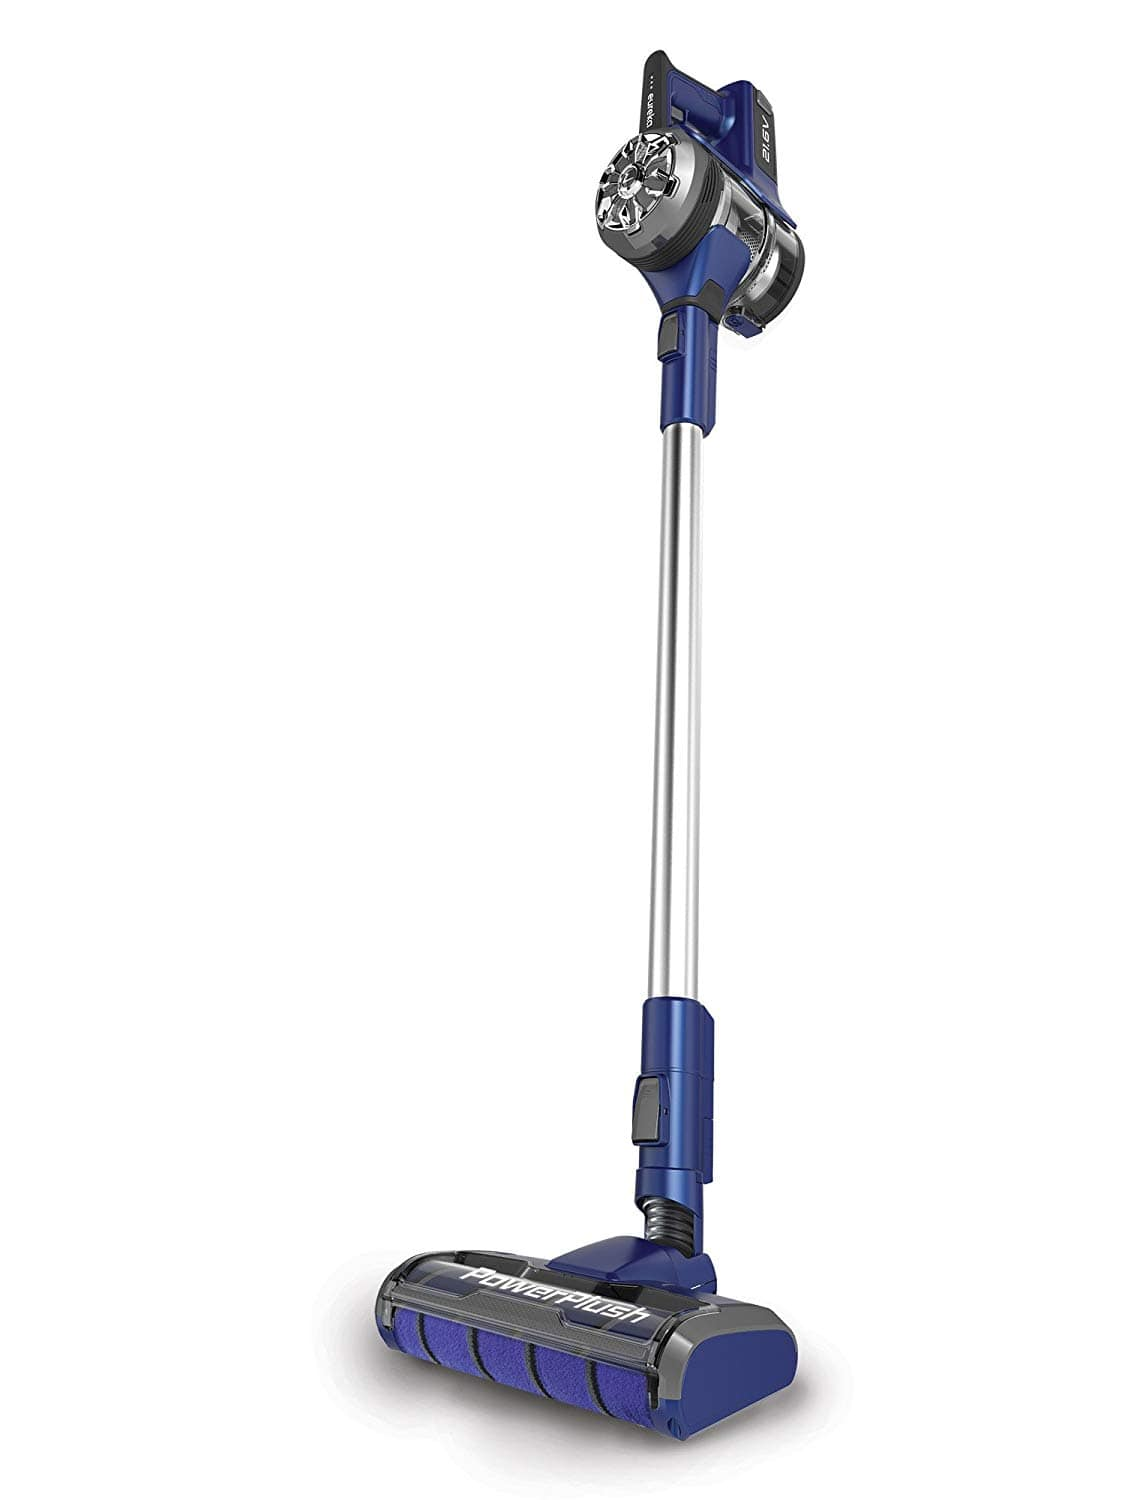 Eureka NEC122A Power Plush 2-in-1 Stick, Rechargeable Cordless Vacuum Cleaner, $50